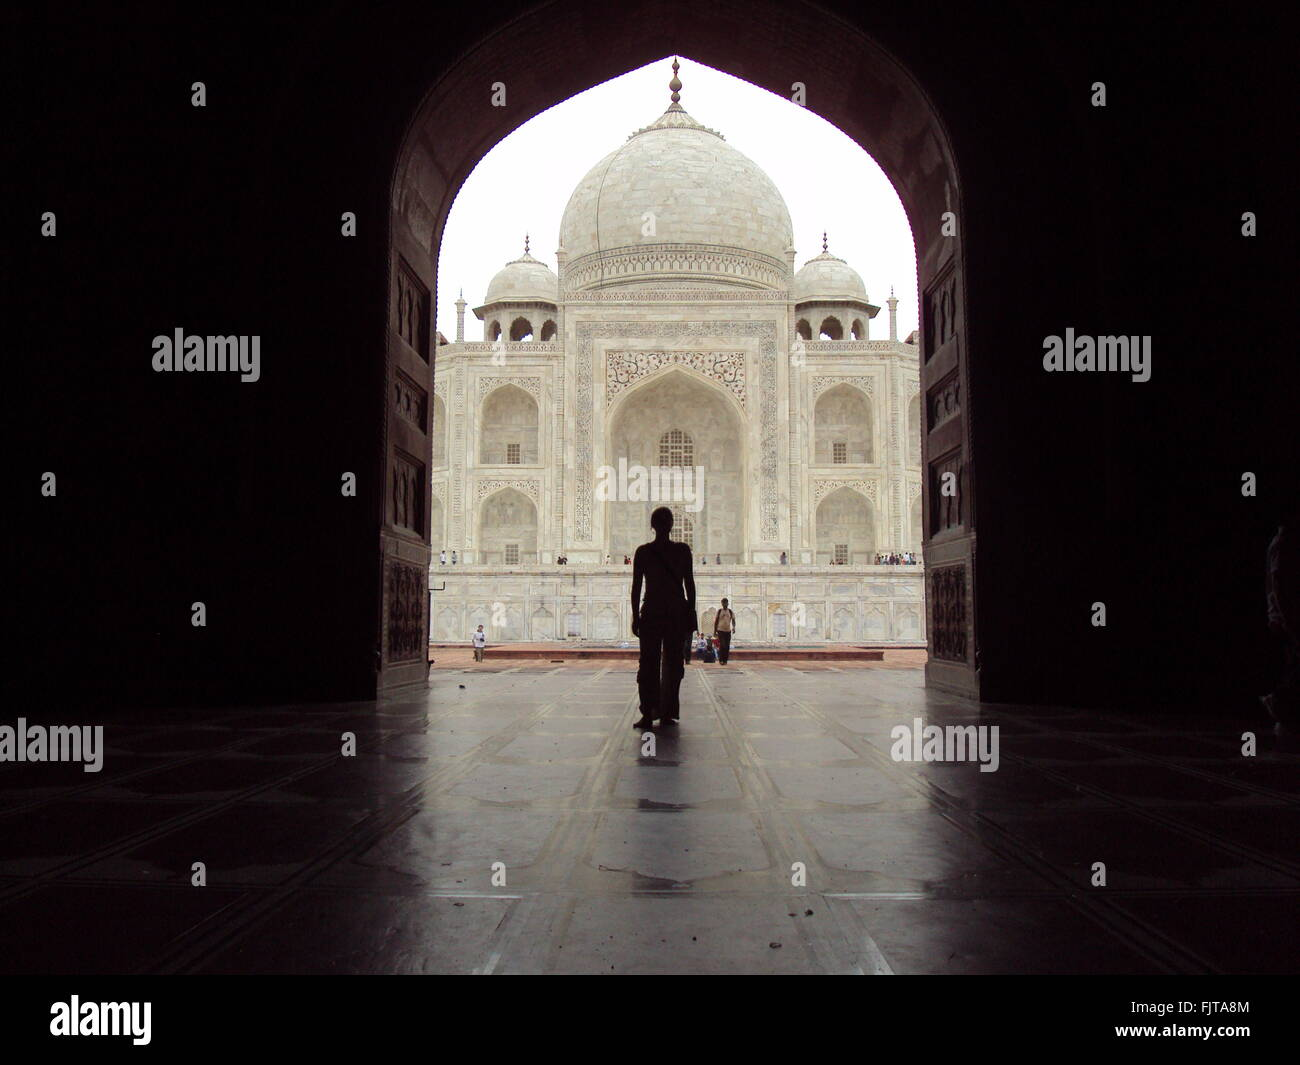 Person Standing At Archway In Front Of Taj Mahal - Stock Image